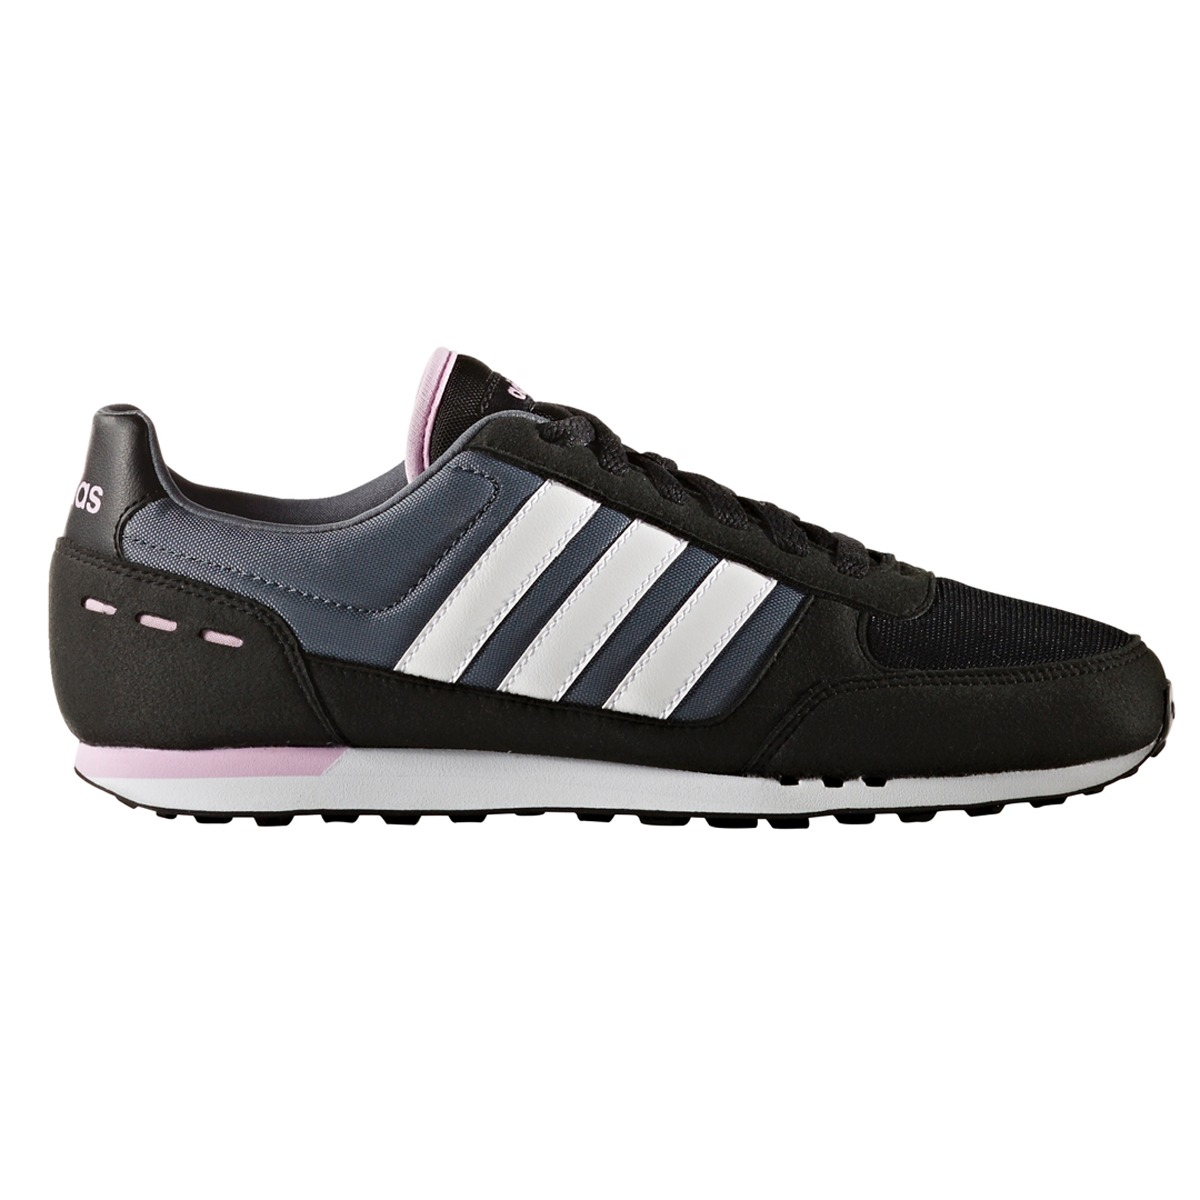 save off afe6c 9e00d zapatillas adidas neo city racer w sportline. Cargando zoom.